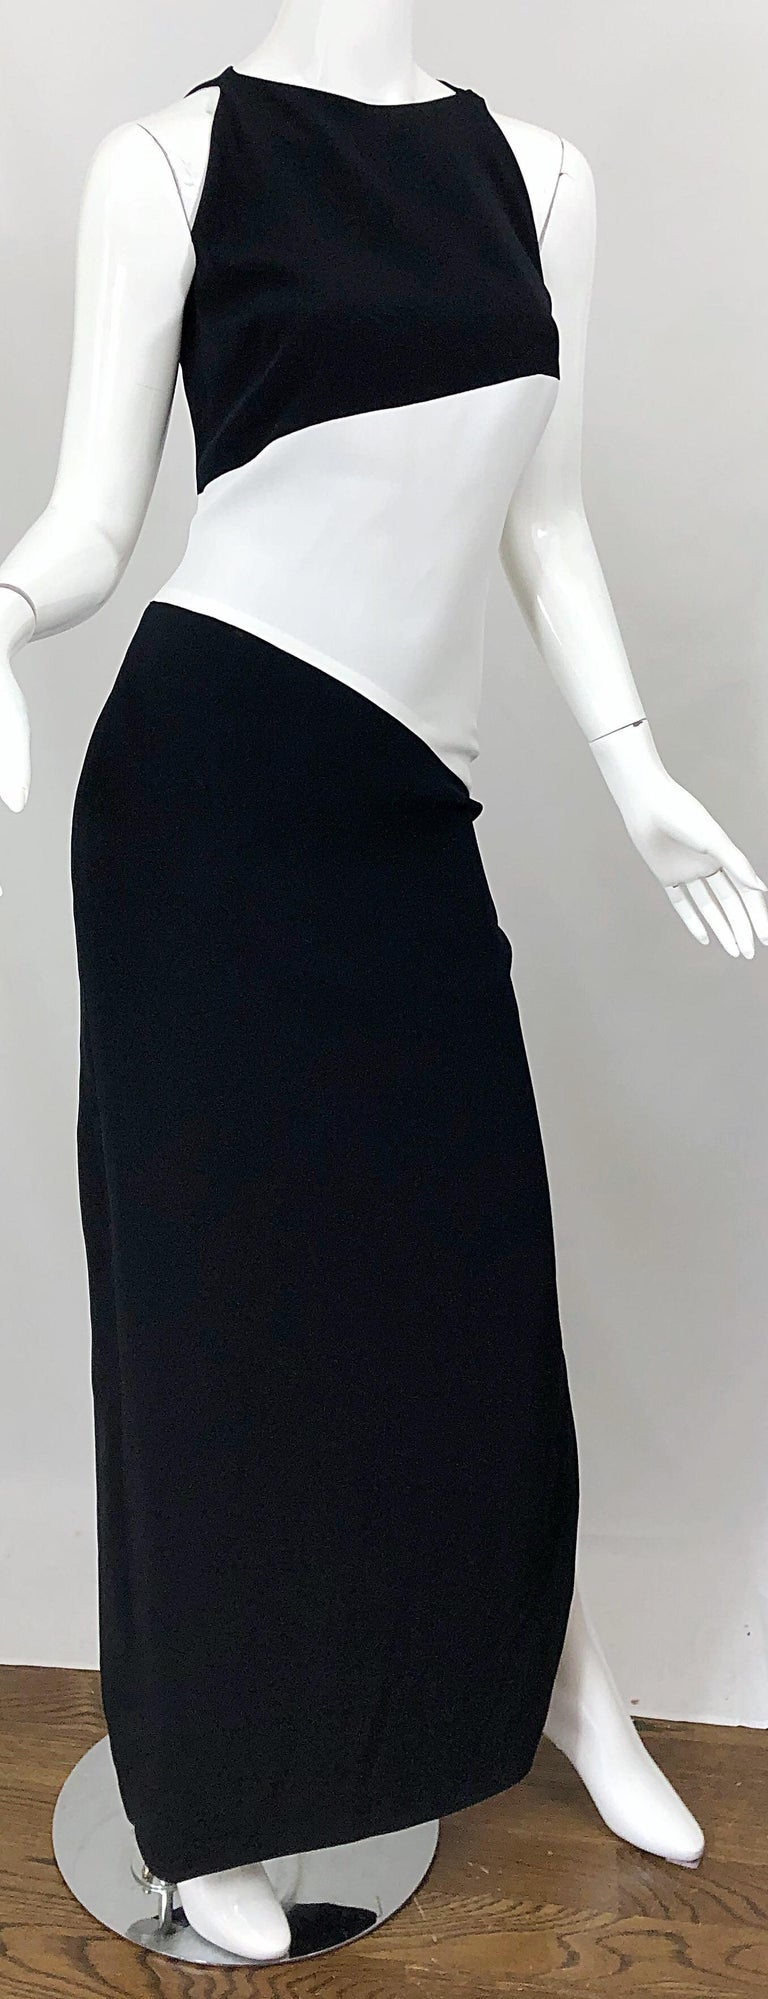 NWT Vintage Bob Mackie Size 8 Black and White Color Block Sleeveless Gown Dress For Sale 1